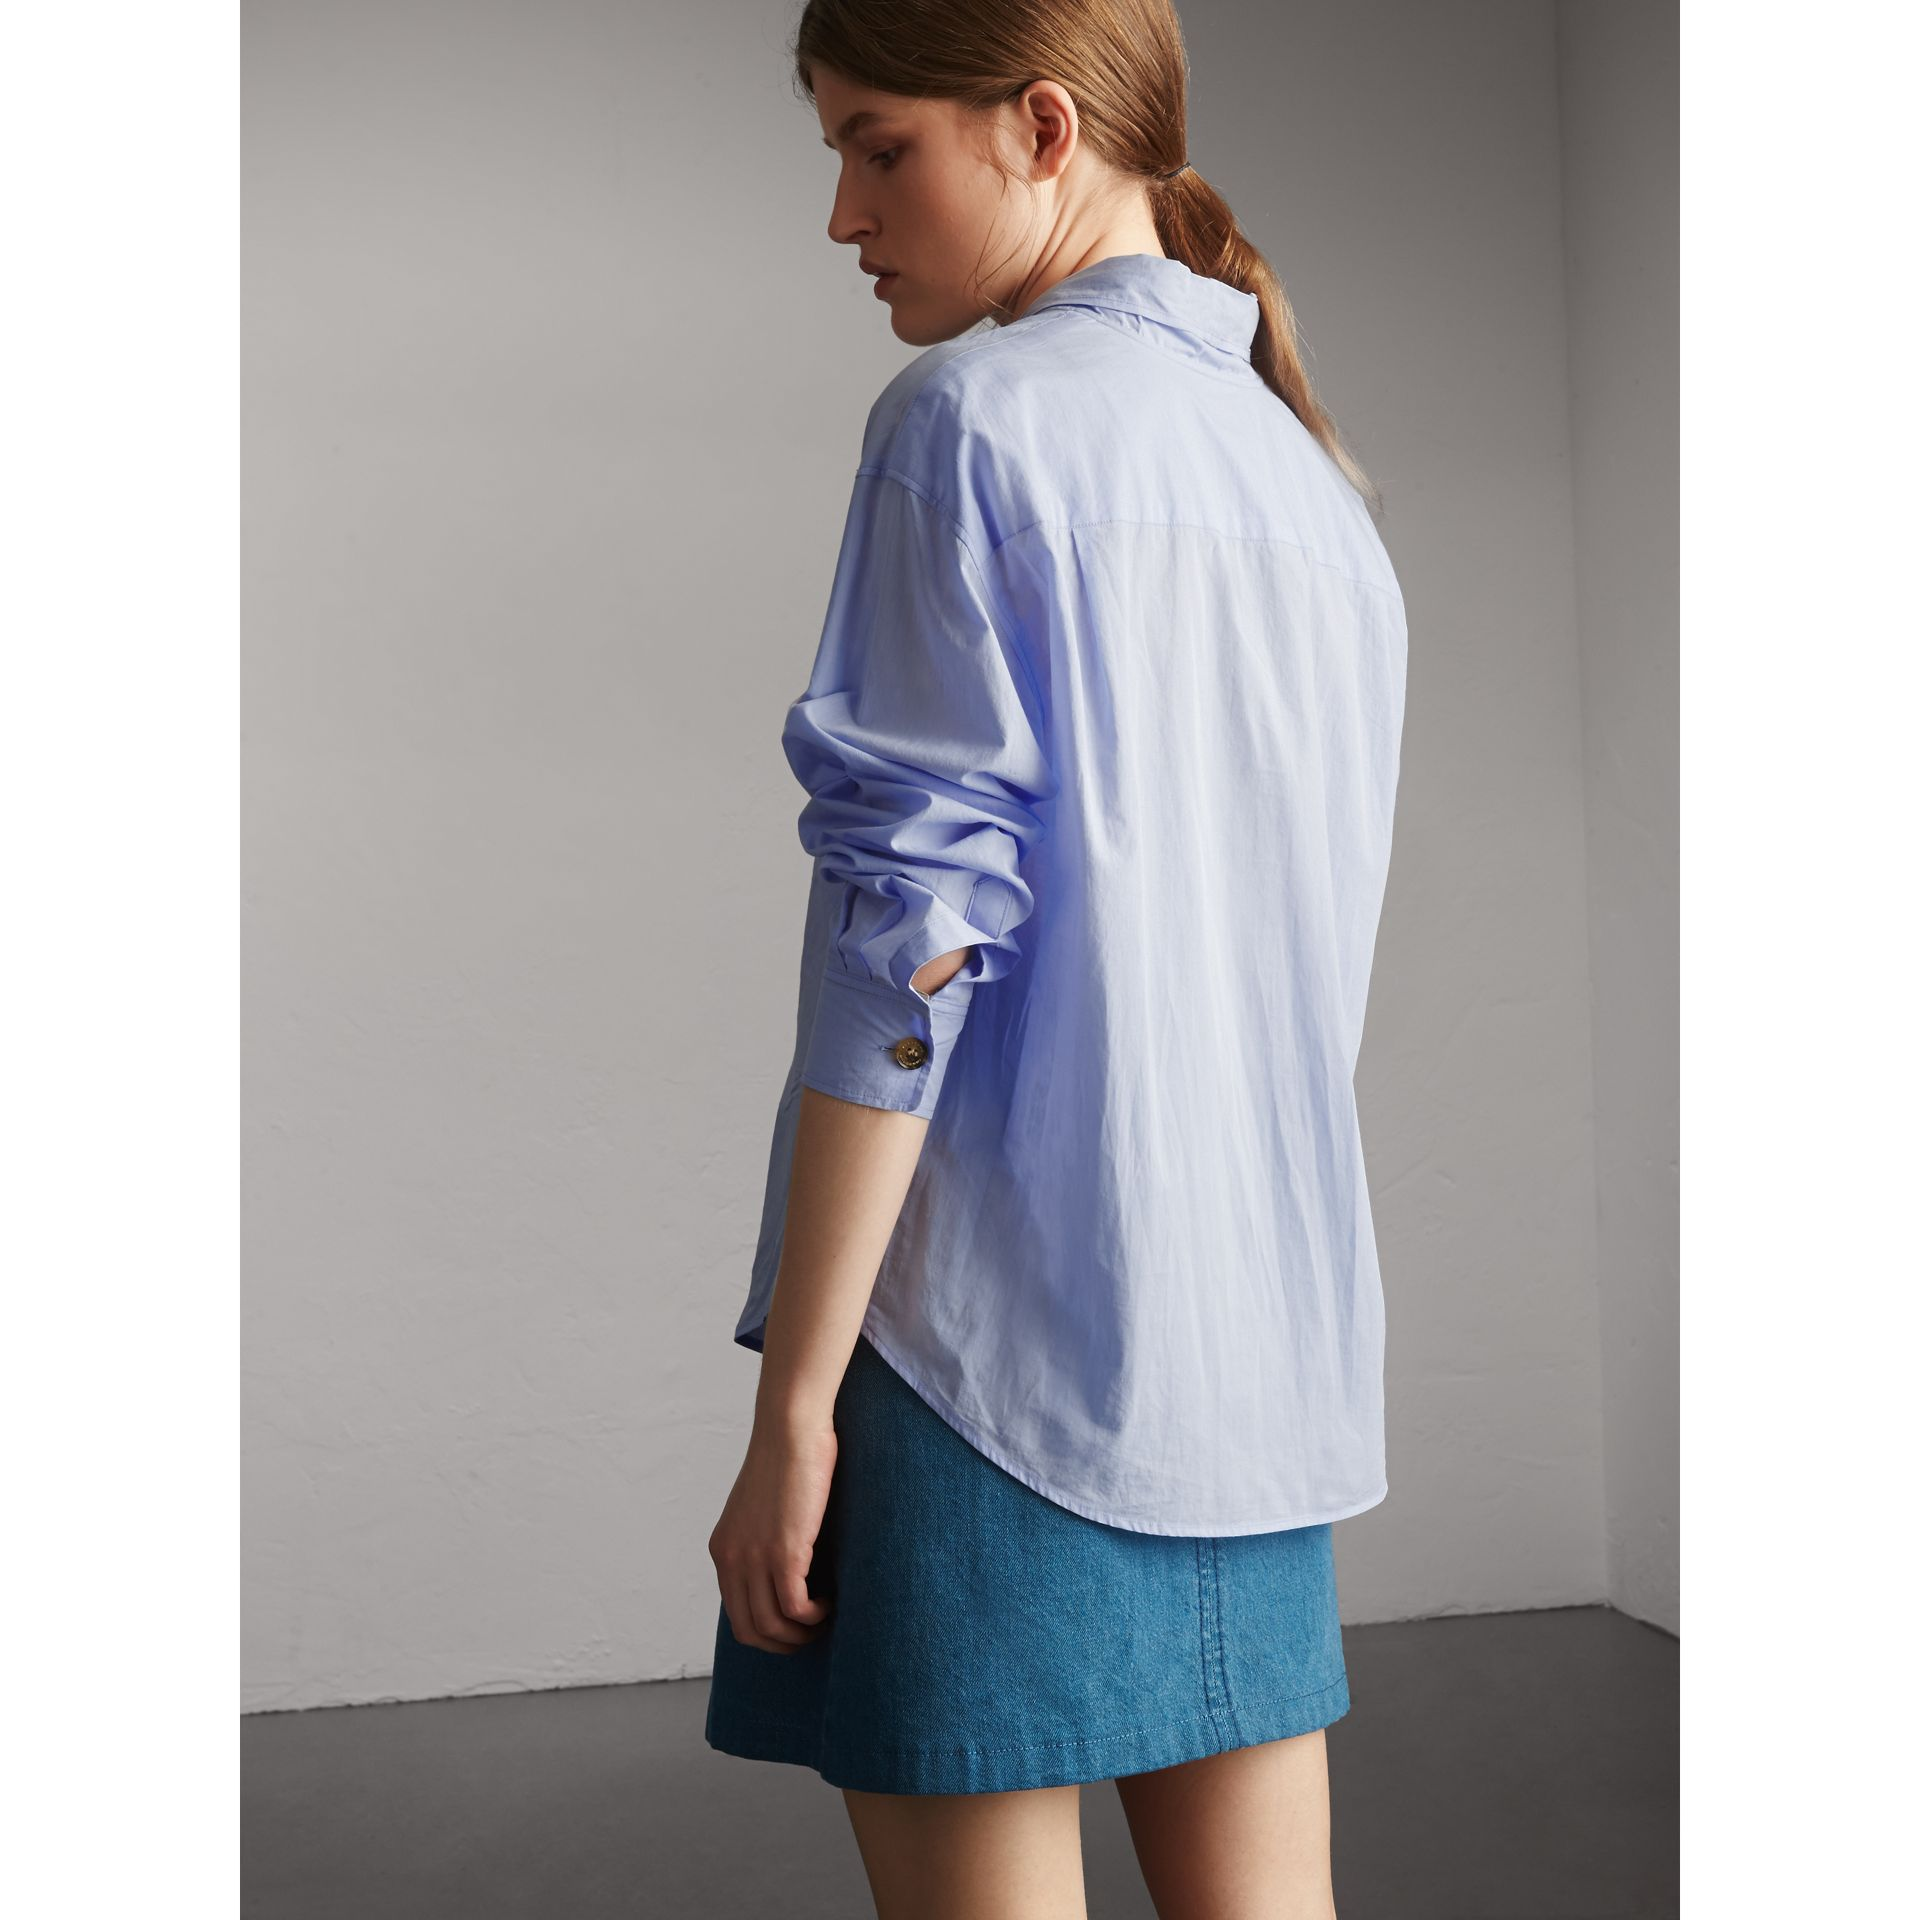 Cotton Tie Neck Shirt in Pale Blue - Women | Burberry - gallery image 3